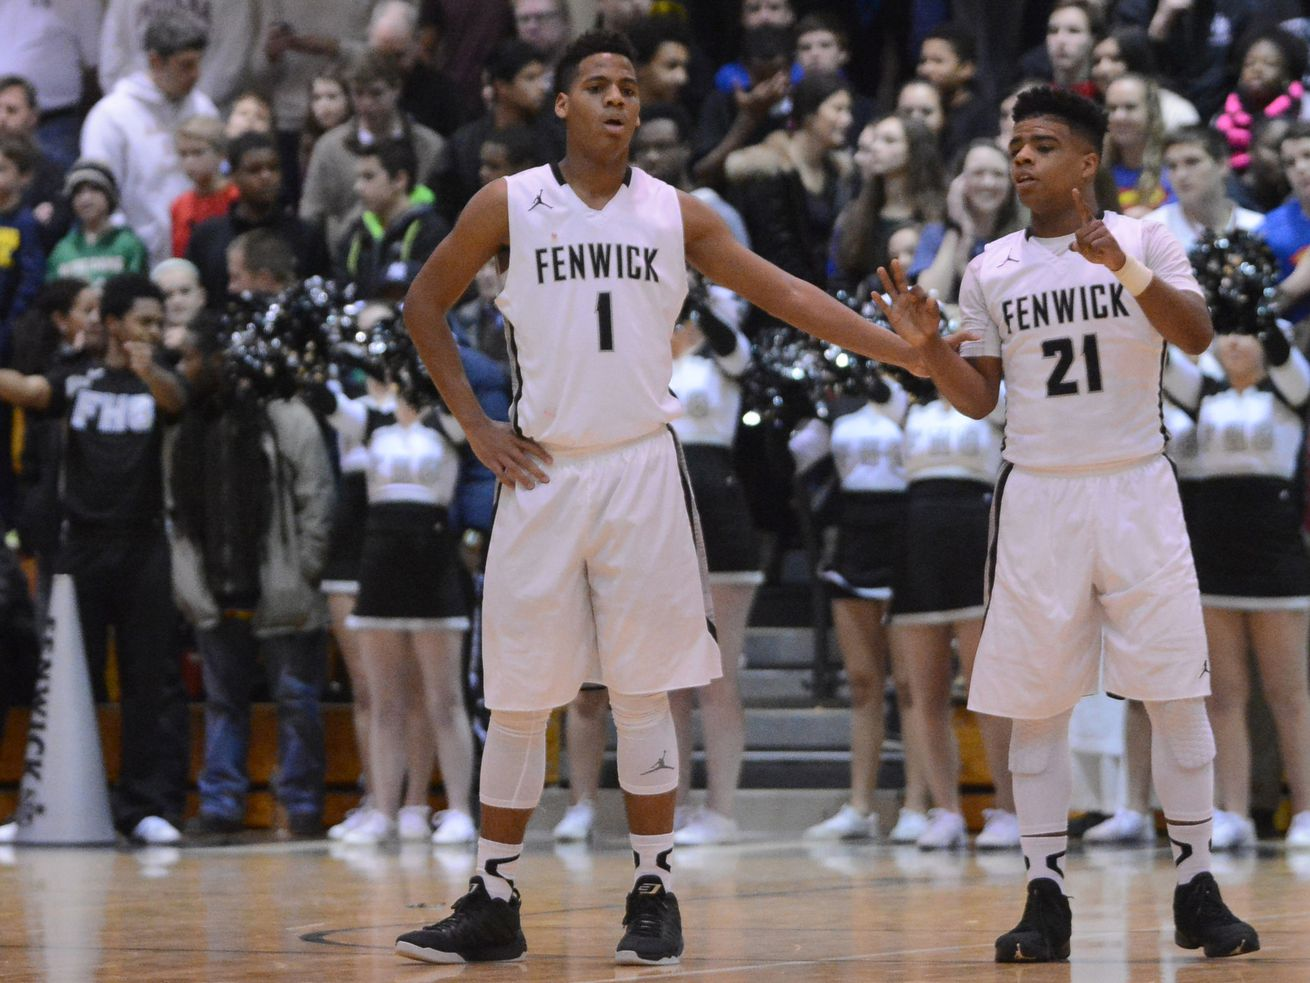 Fenwick's Jacob Keller (1) and Mike Smith (21) talk during a free throw.